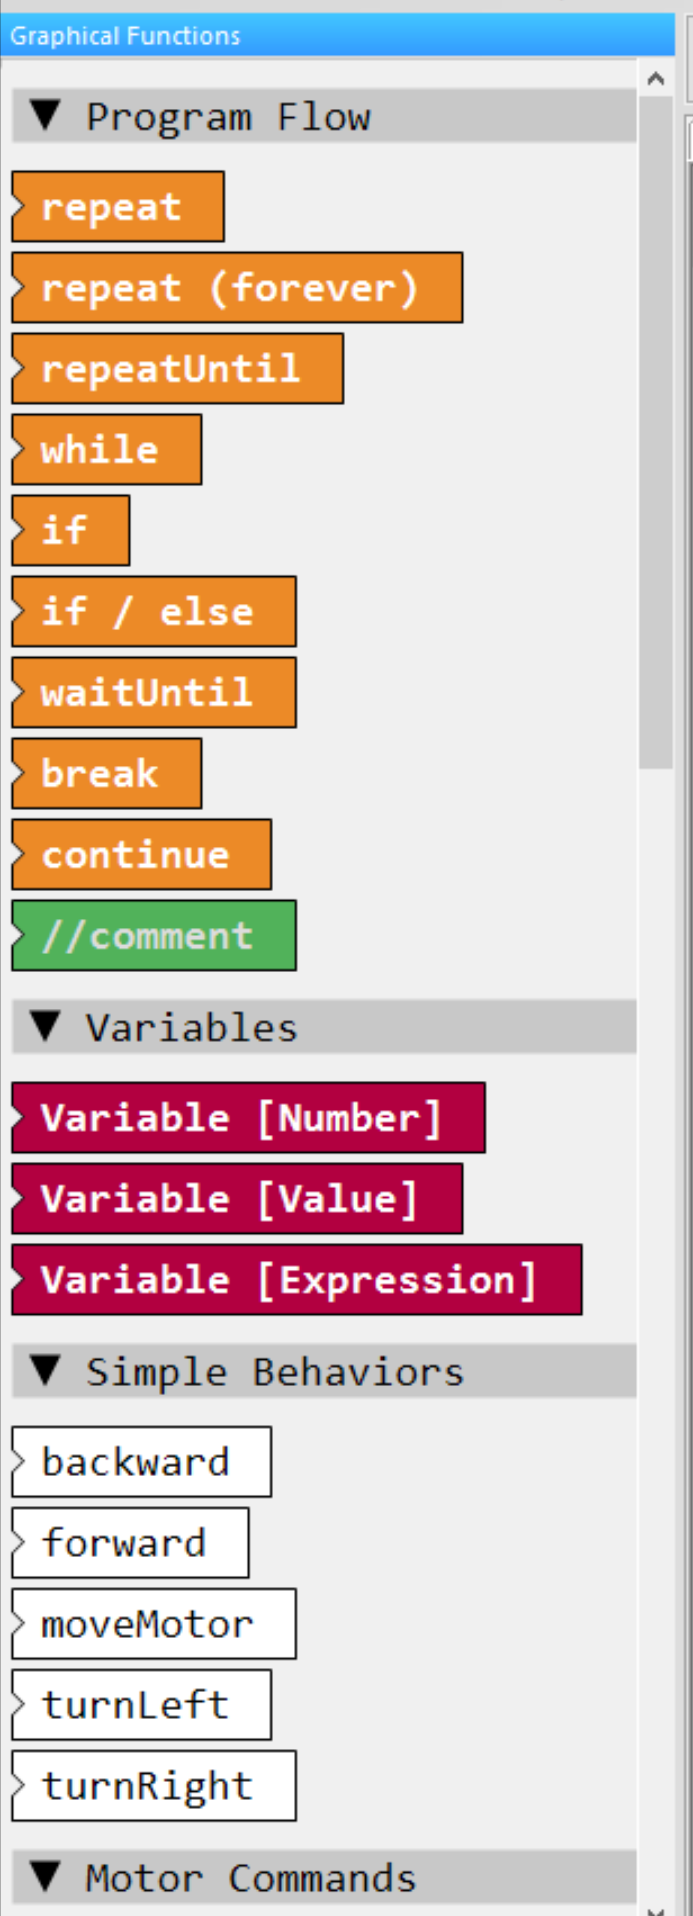 Graphical Functions list